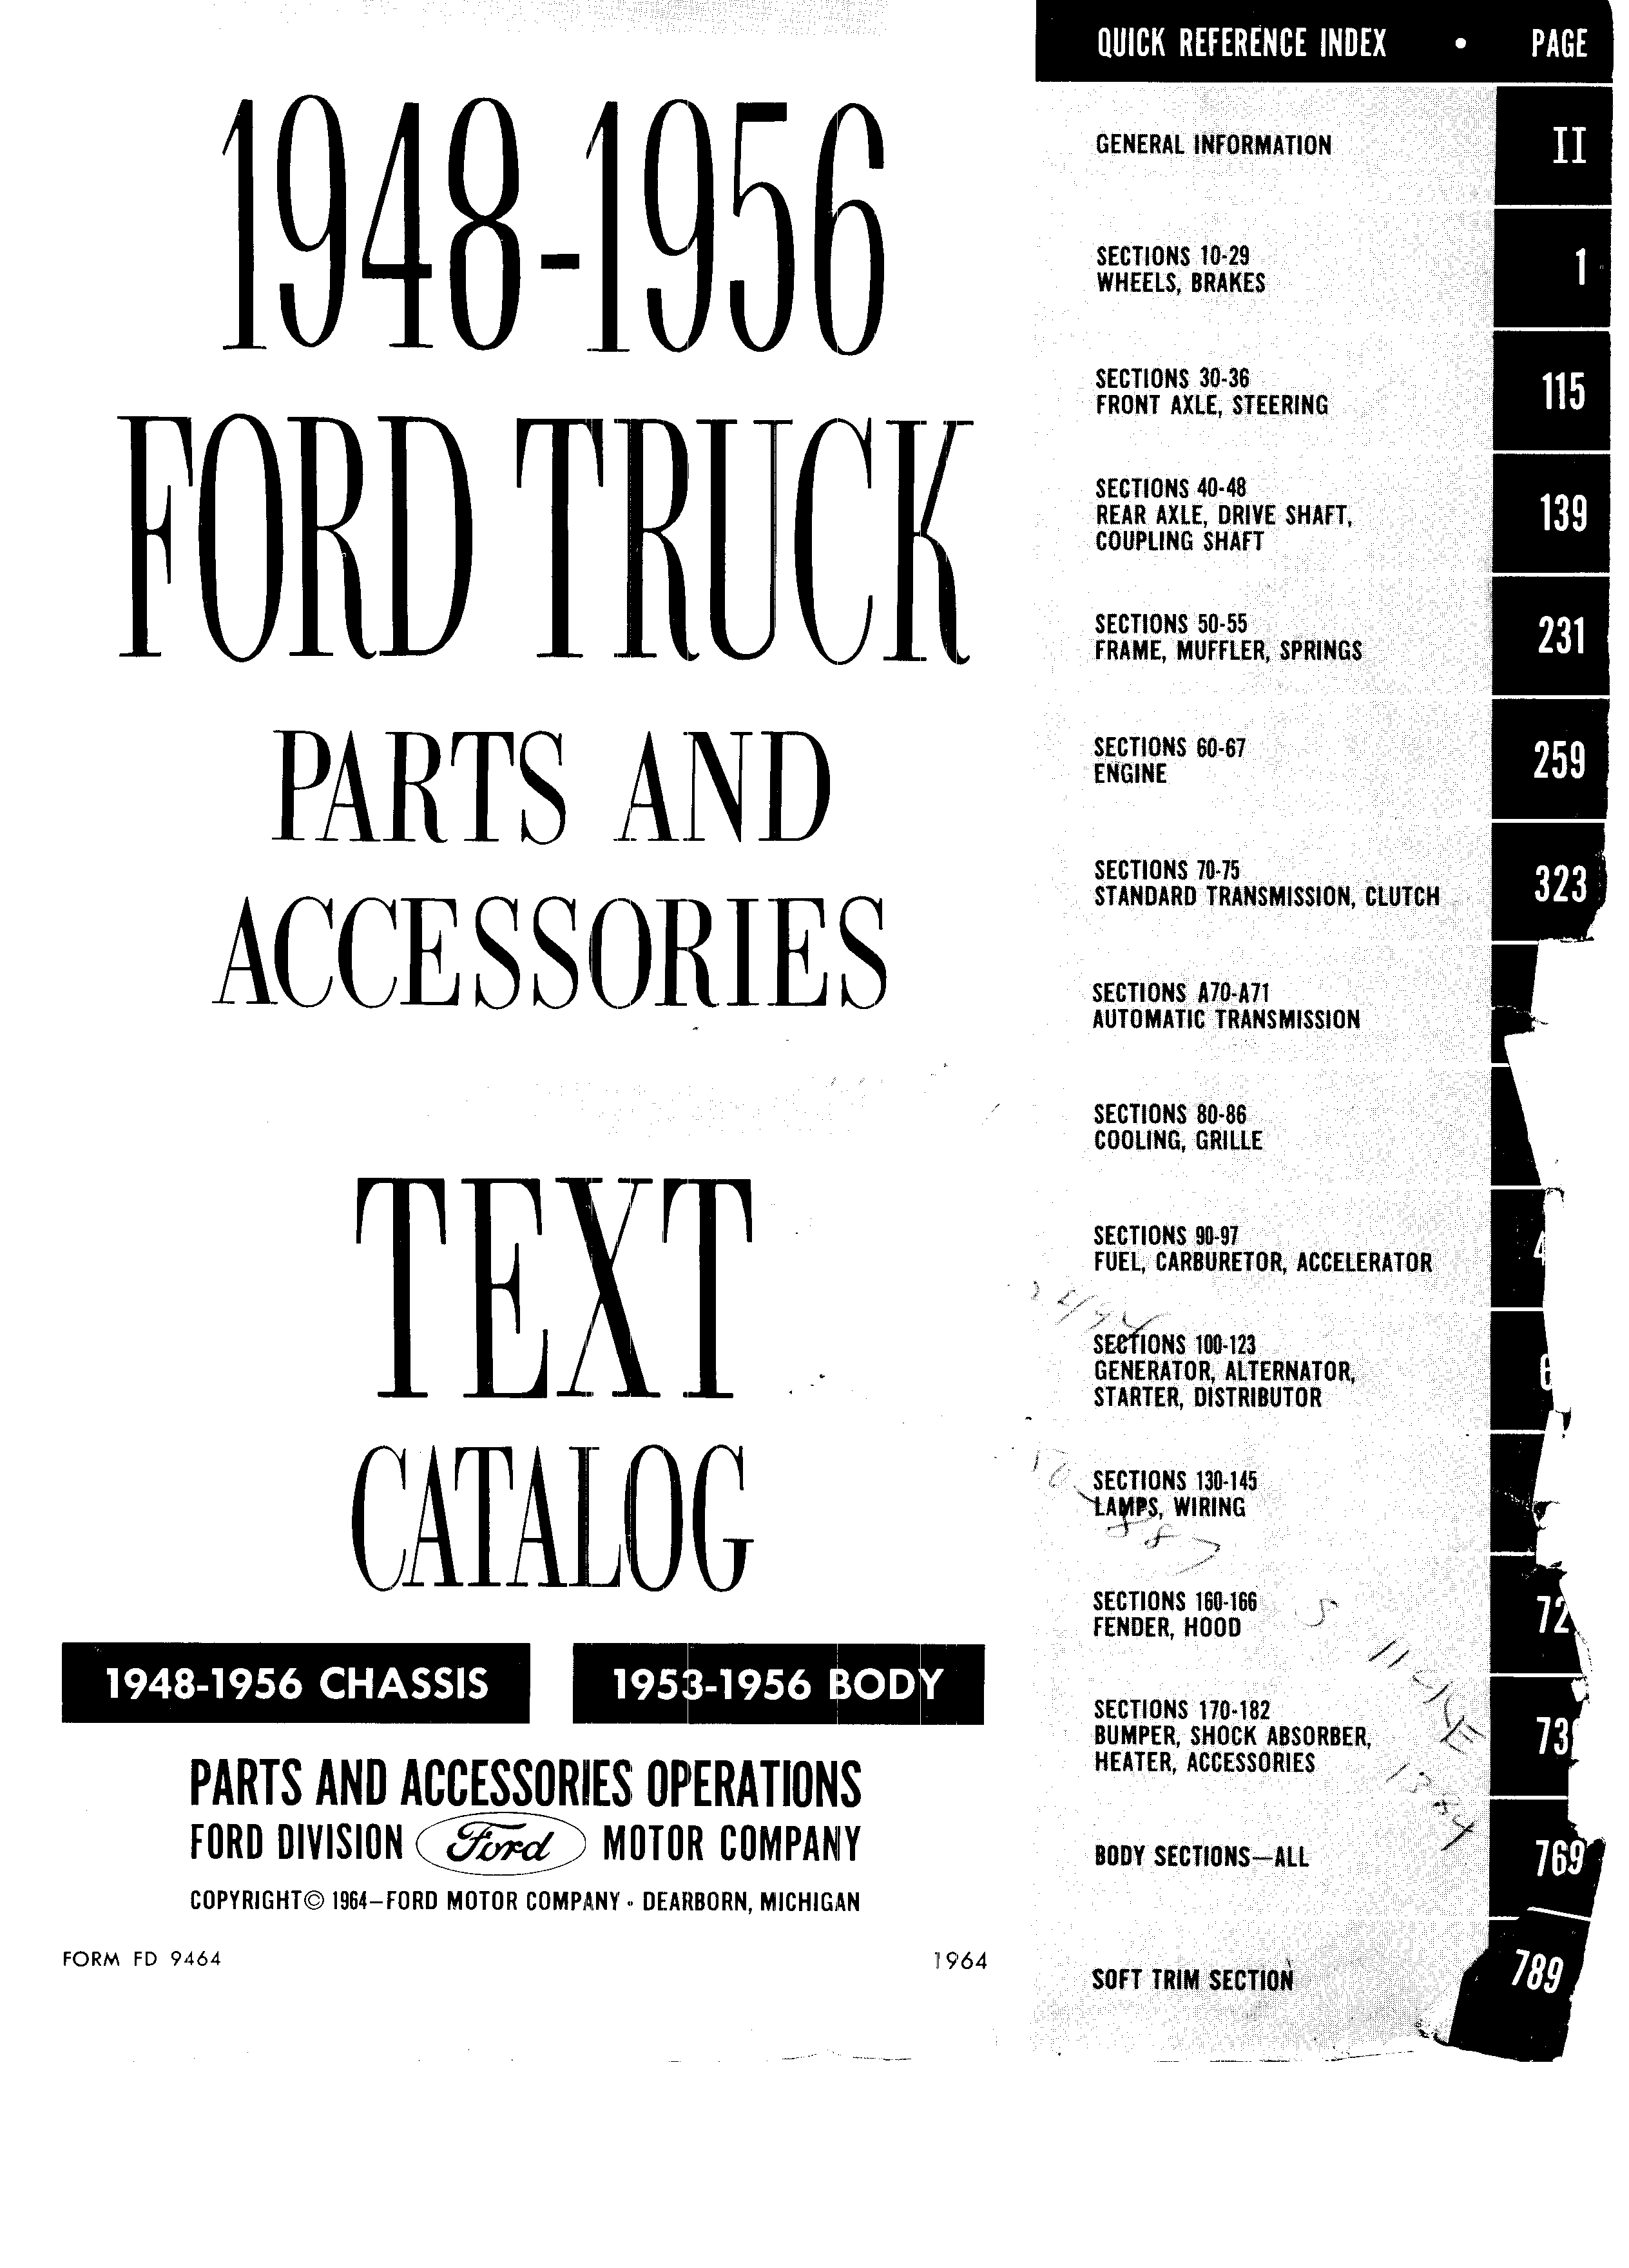 Ford Truck Parts and Accessories Text Catalog FD 9464 January 1964